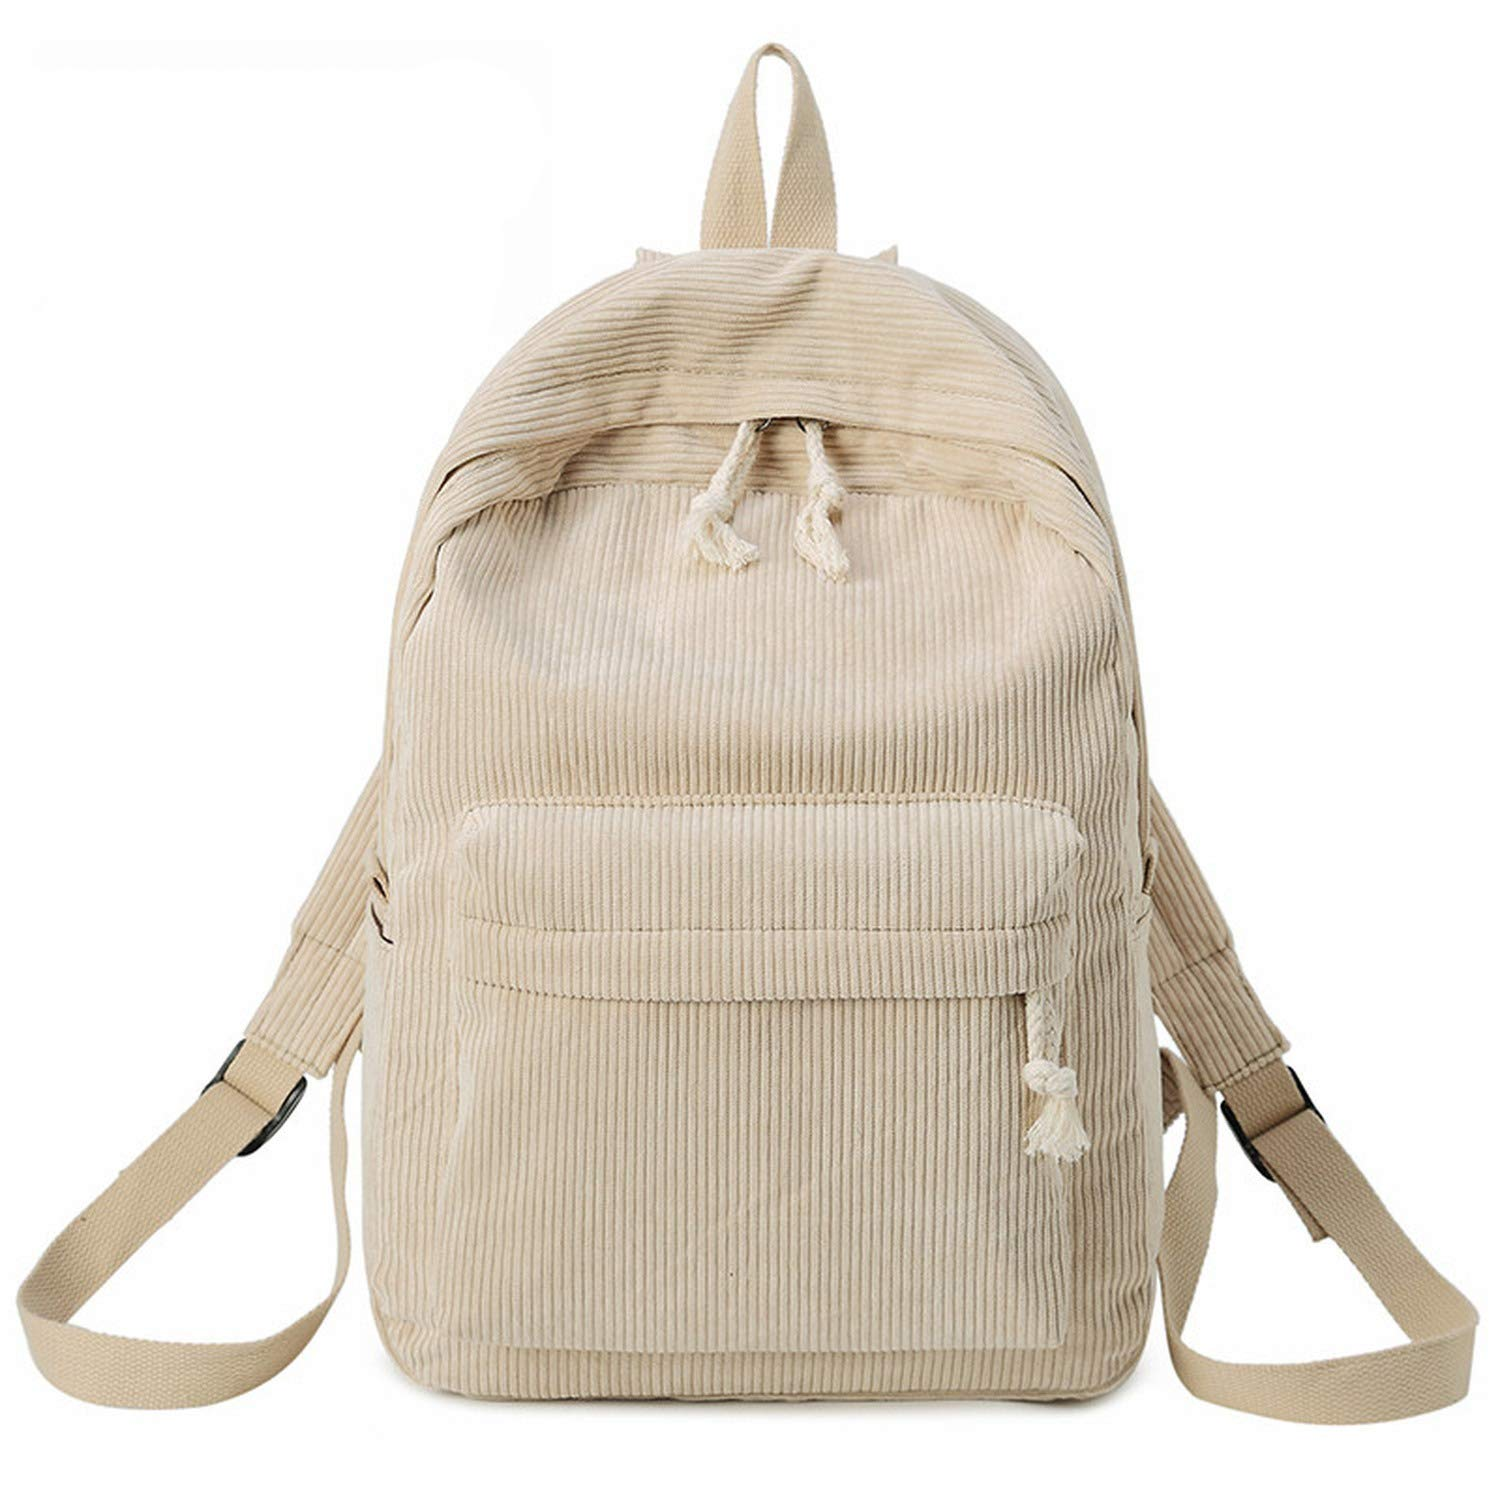 Amazon.com: Women Nylon bagpack Softback Solid Bag Fashion Soft Handle mochilas Mujer Escolar Rucksack School Bag for Girls,Beige: Computers & Accessories